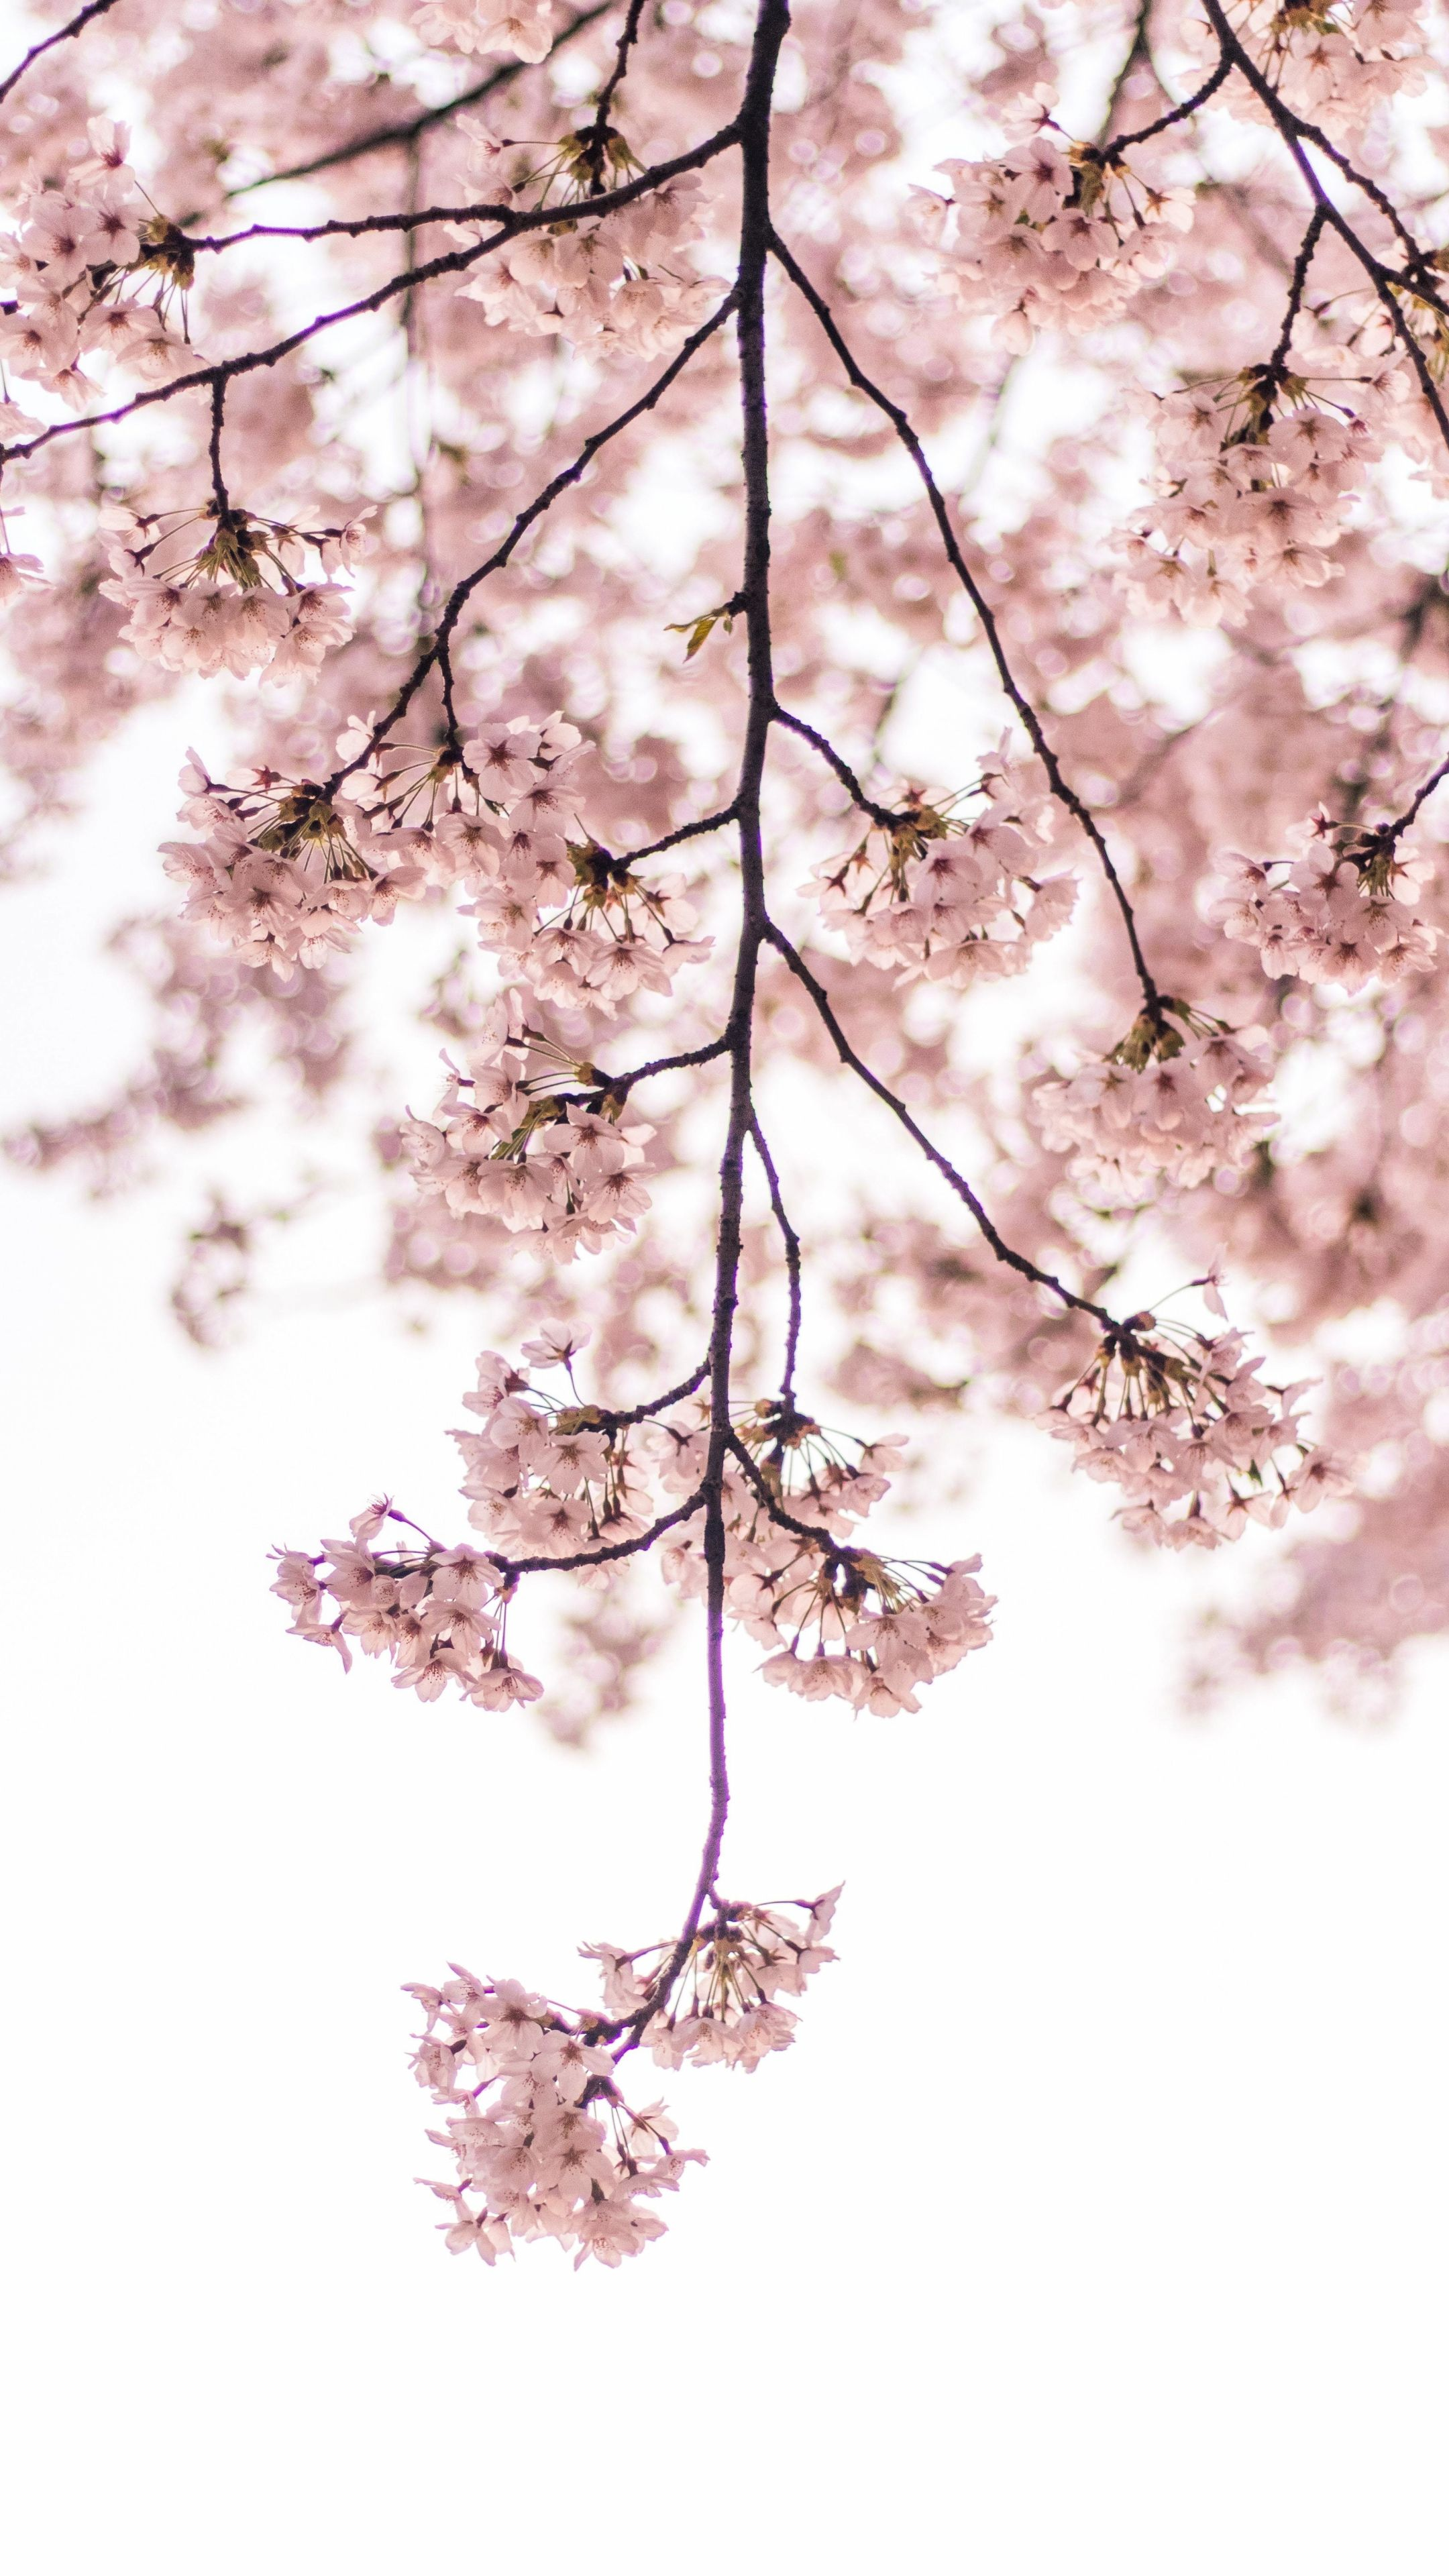 2160x3840 Blossom Pink Flowers Tree Branch Wallpaper Cherry Blossom Wallpaper Iphone Cherry Blossom Wallpaper Tree Branch Wallpaper Coolest flower tree wallpaper images